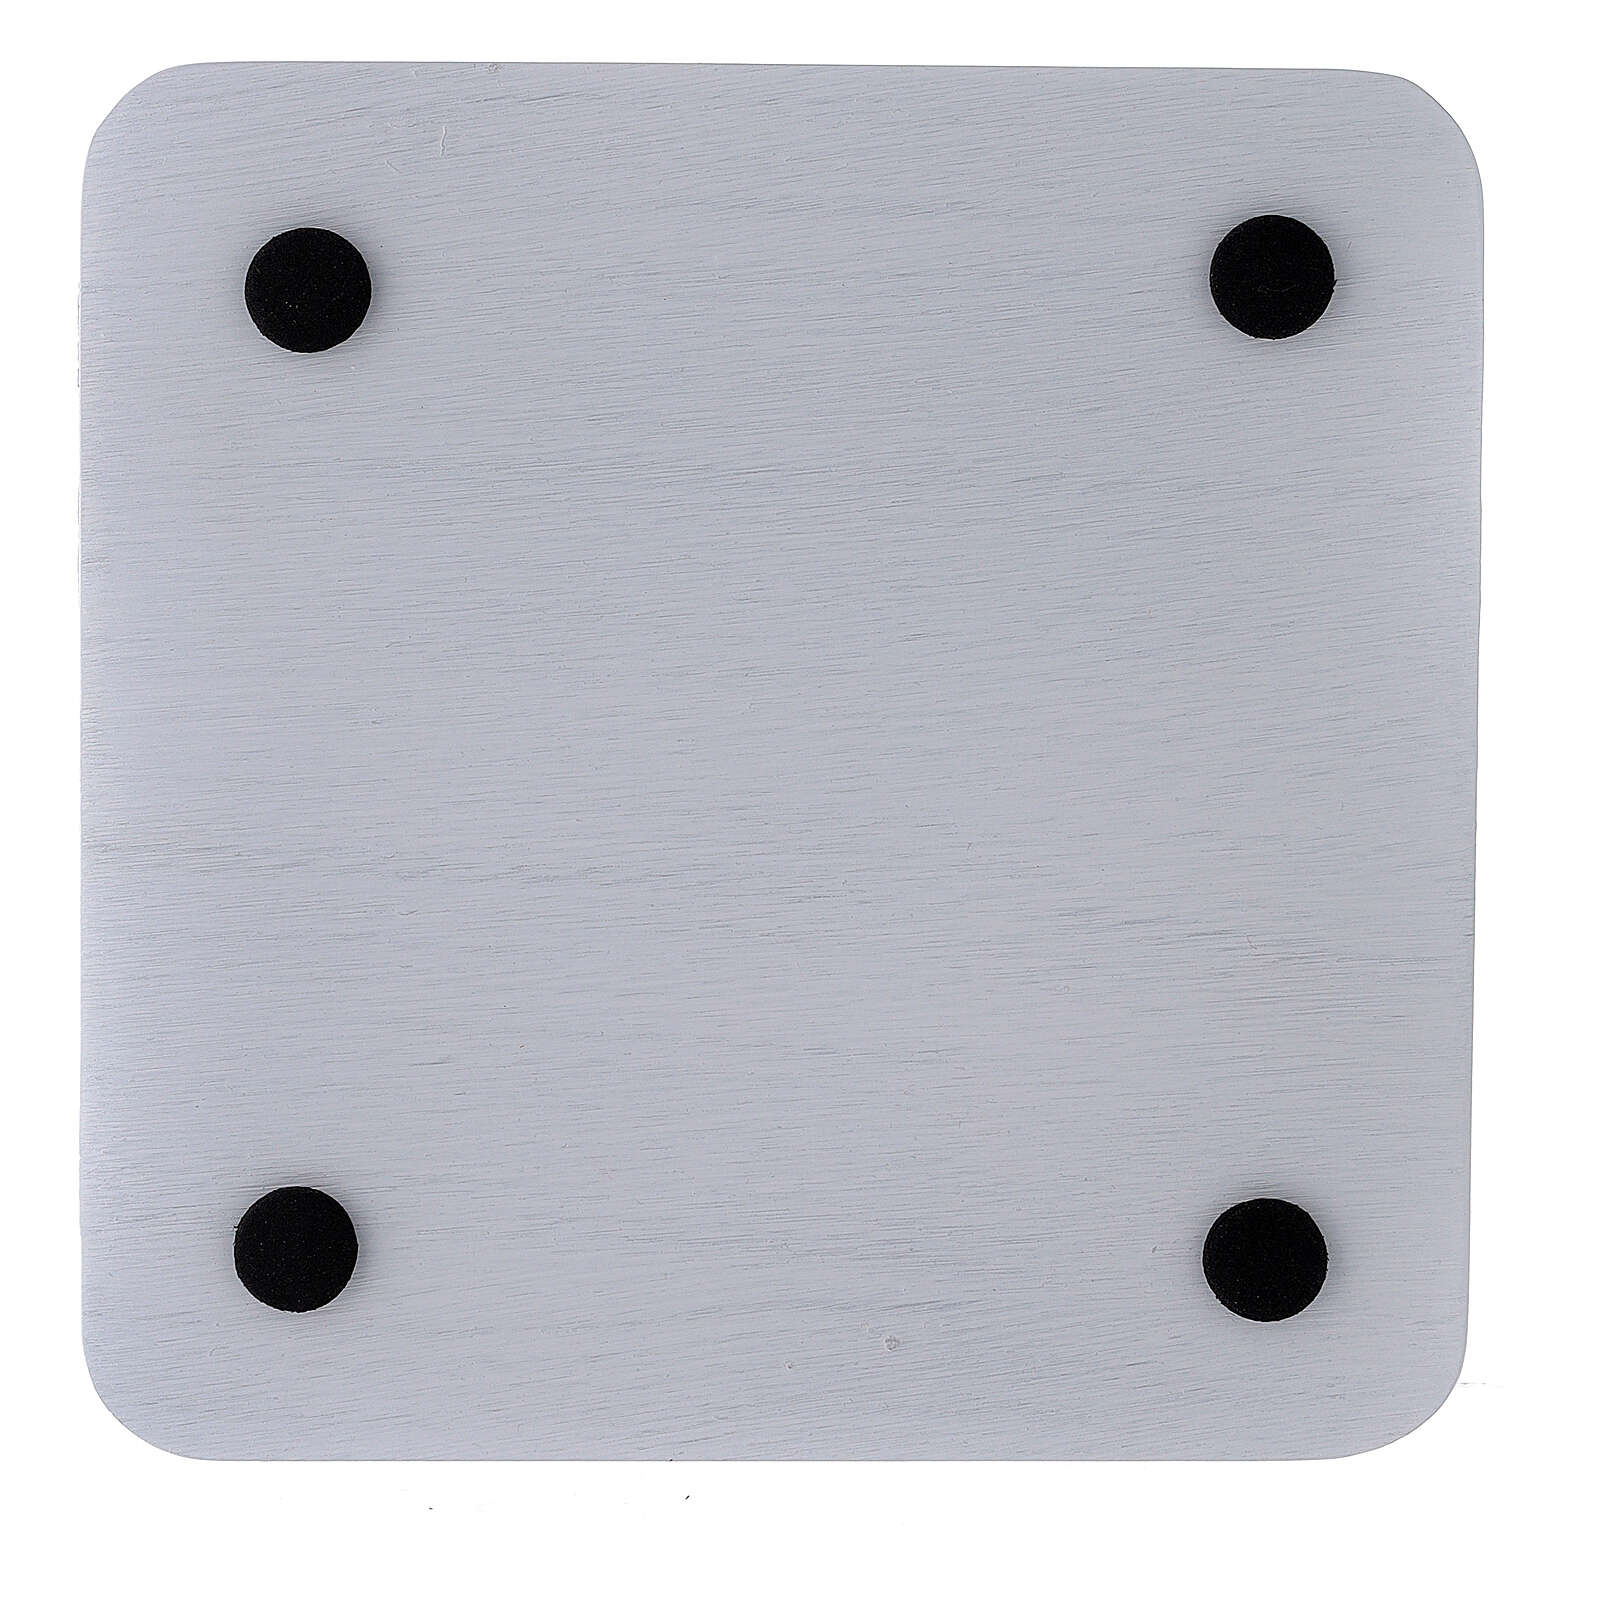 Square plate in white aluminium 5 1/2x5 1/2 in 3